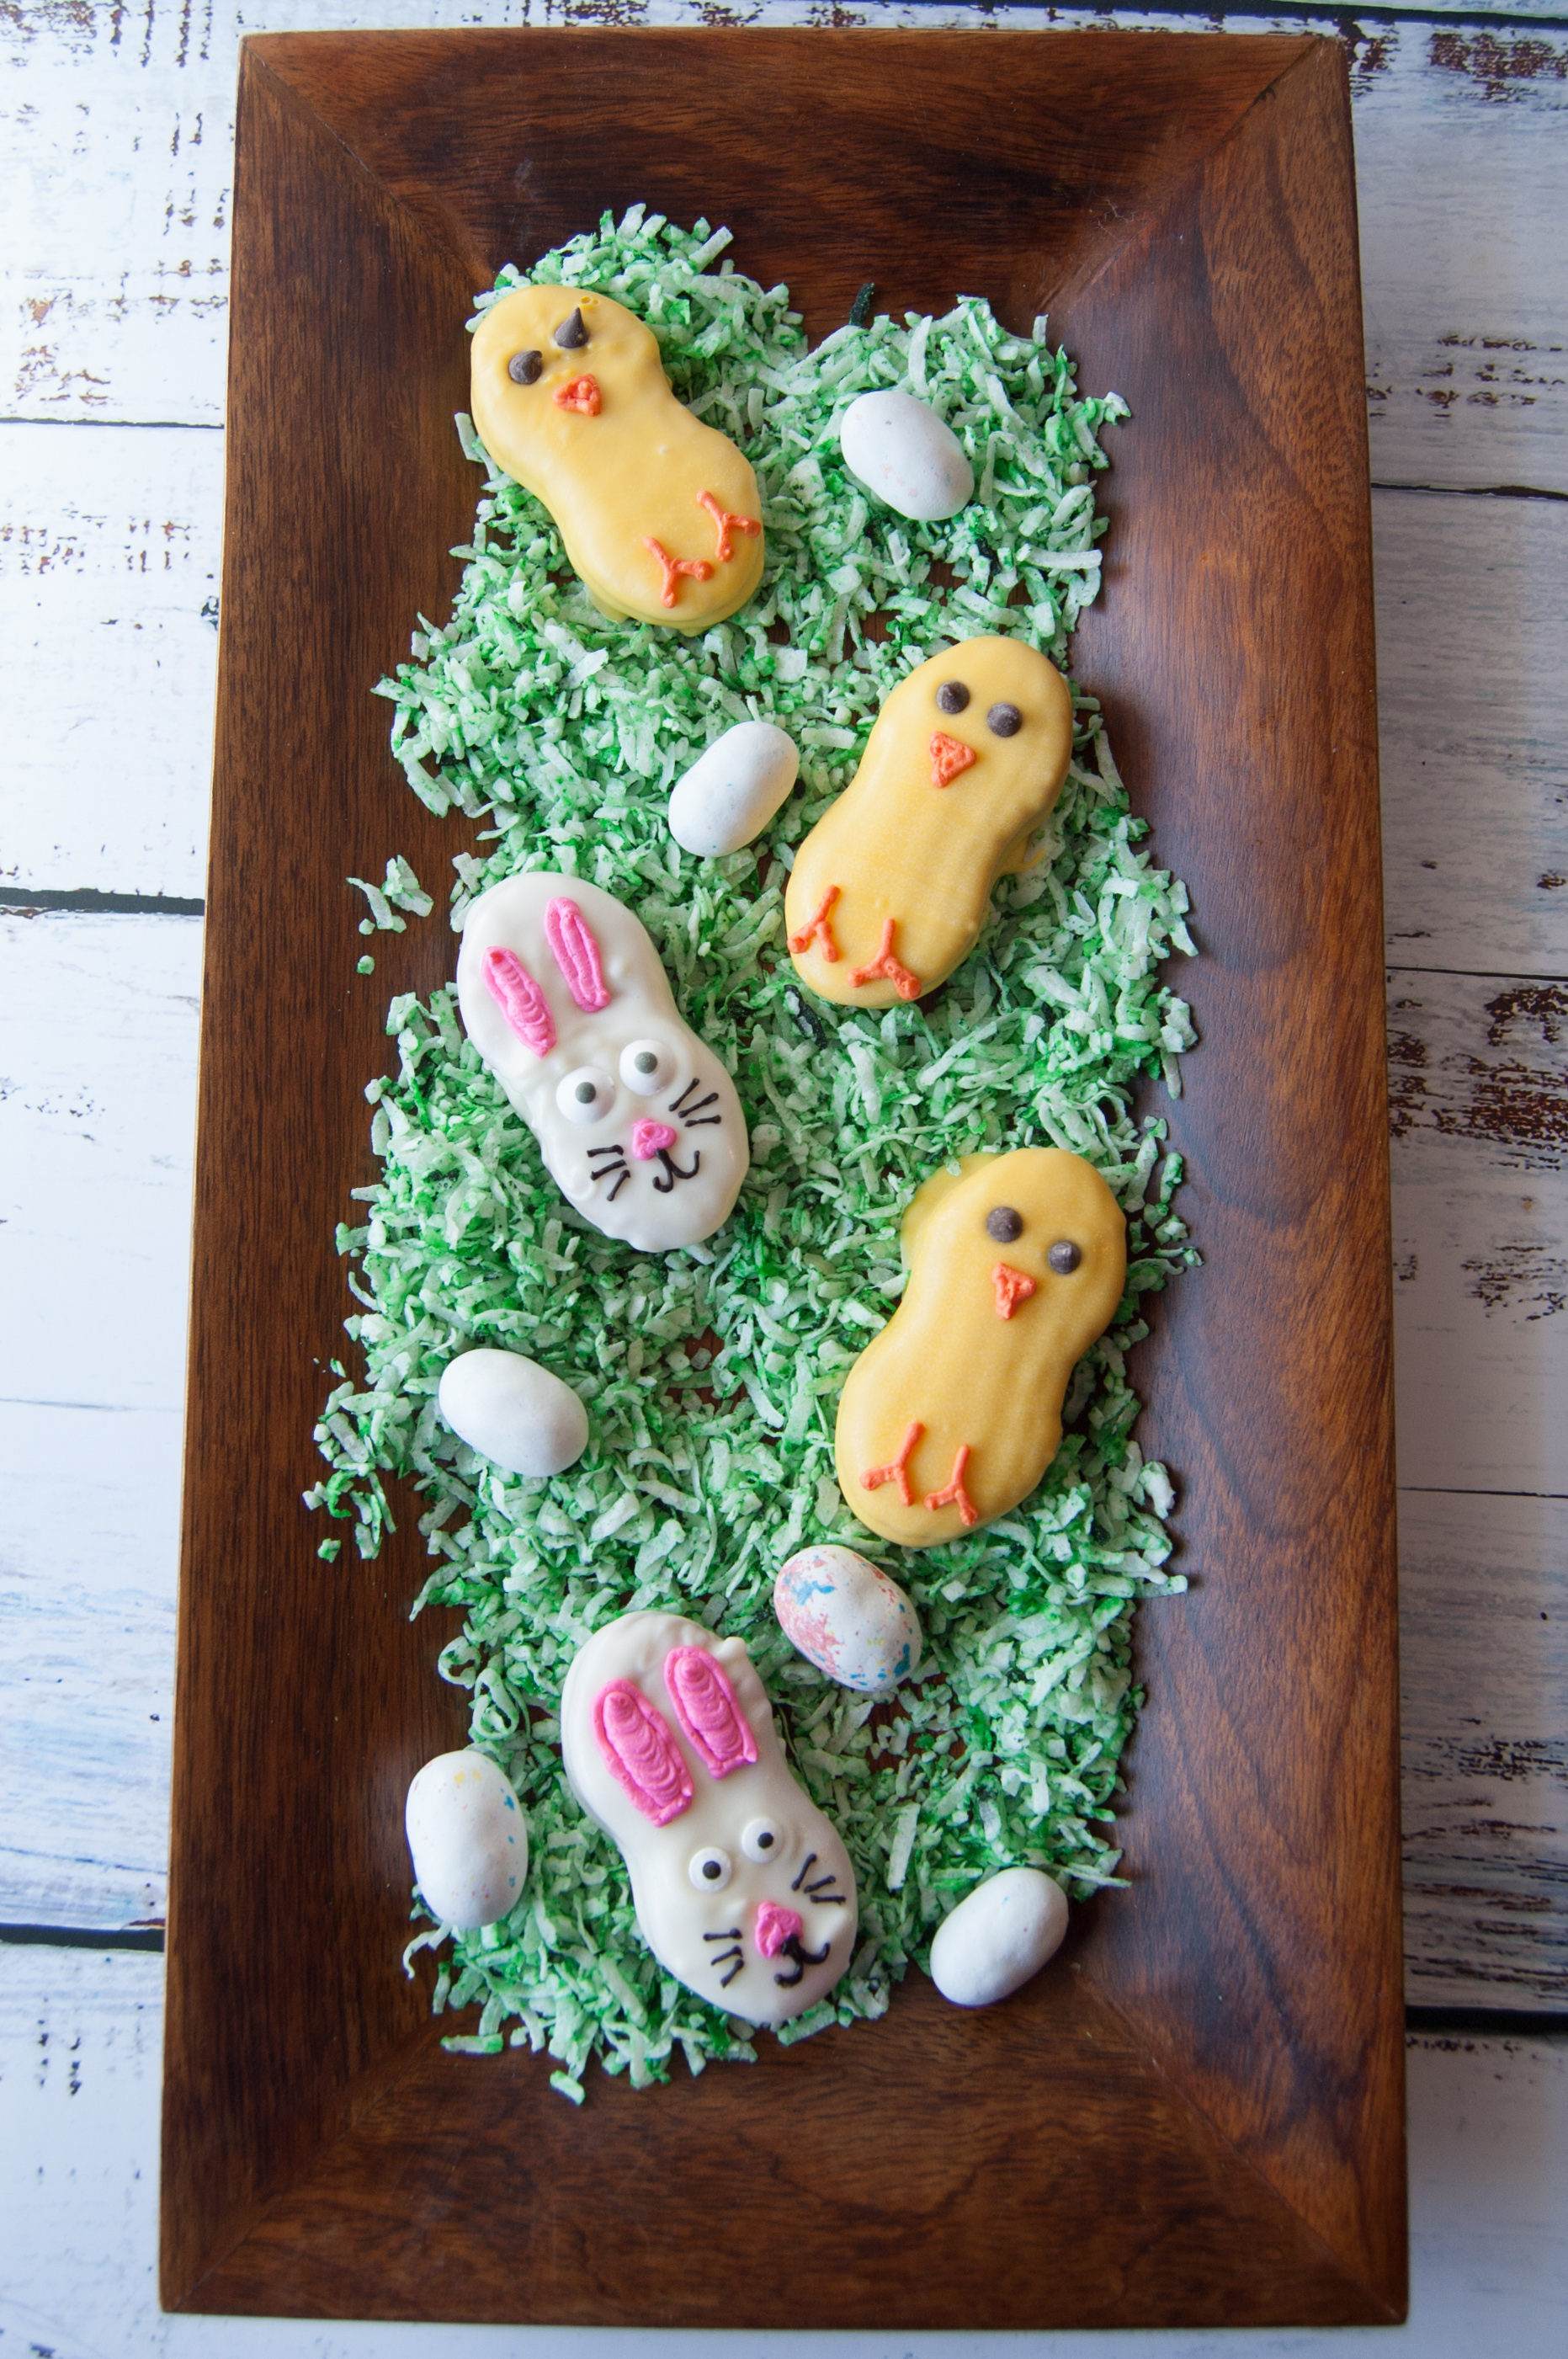 Nutter butter chicks and bunnies